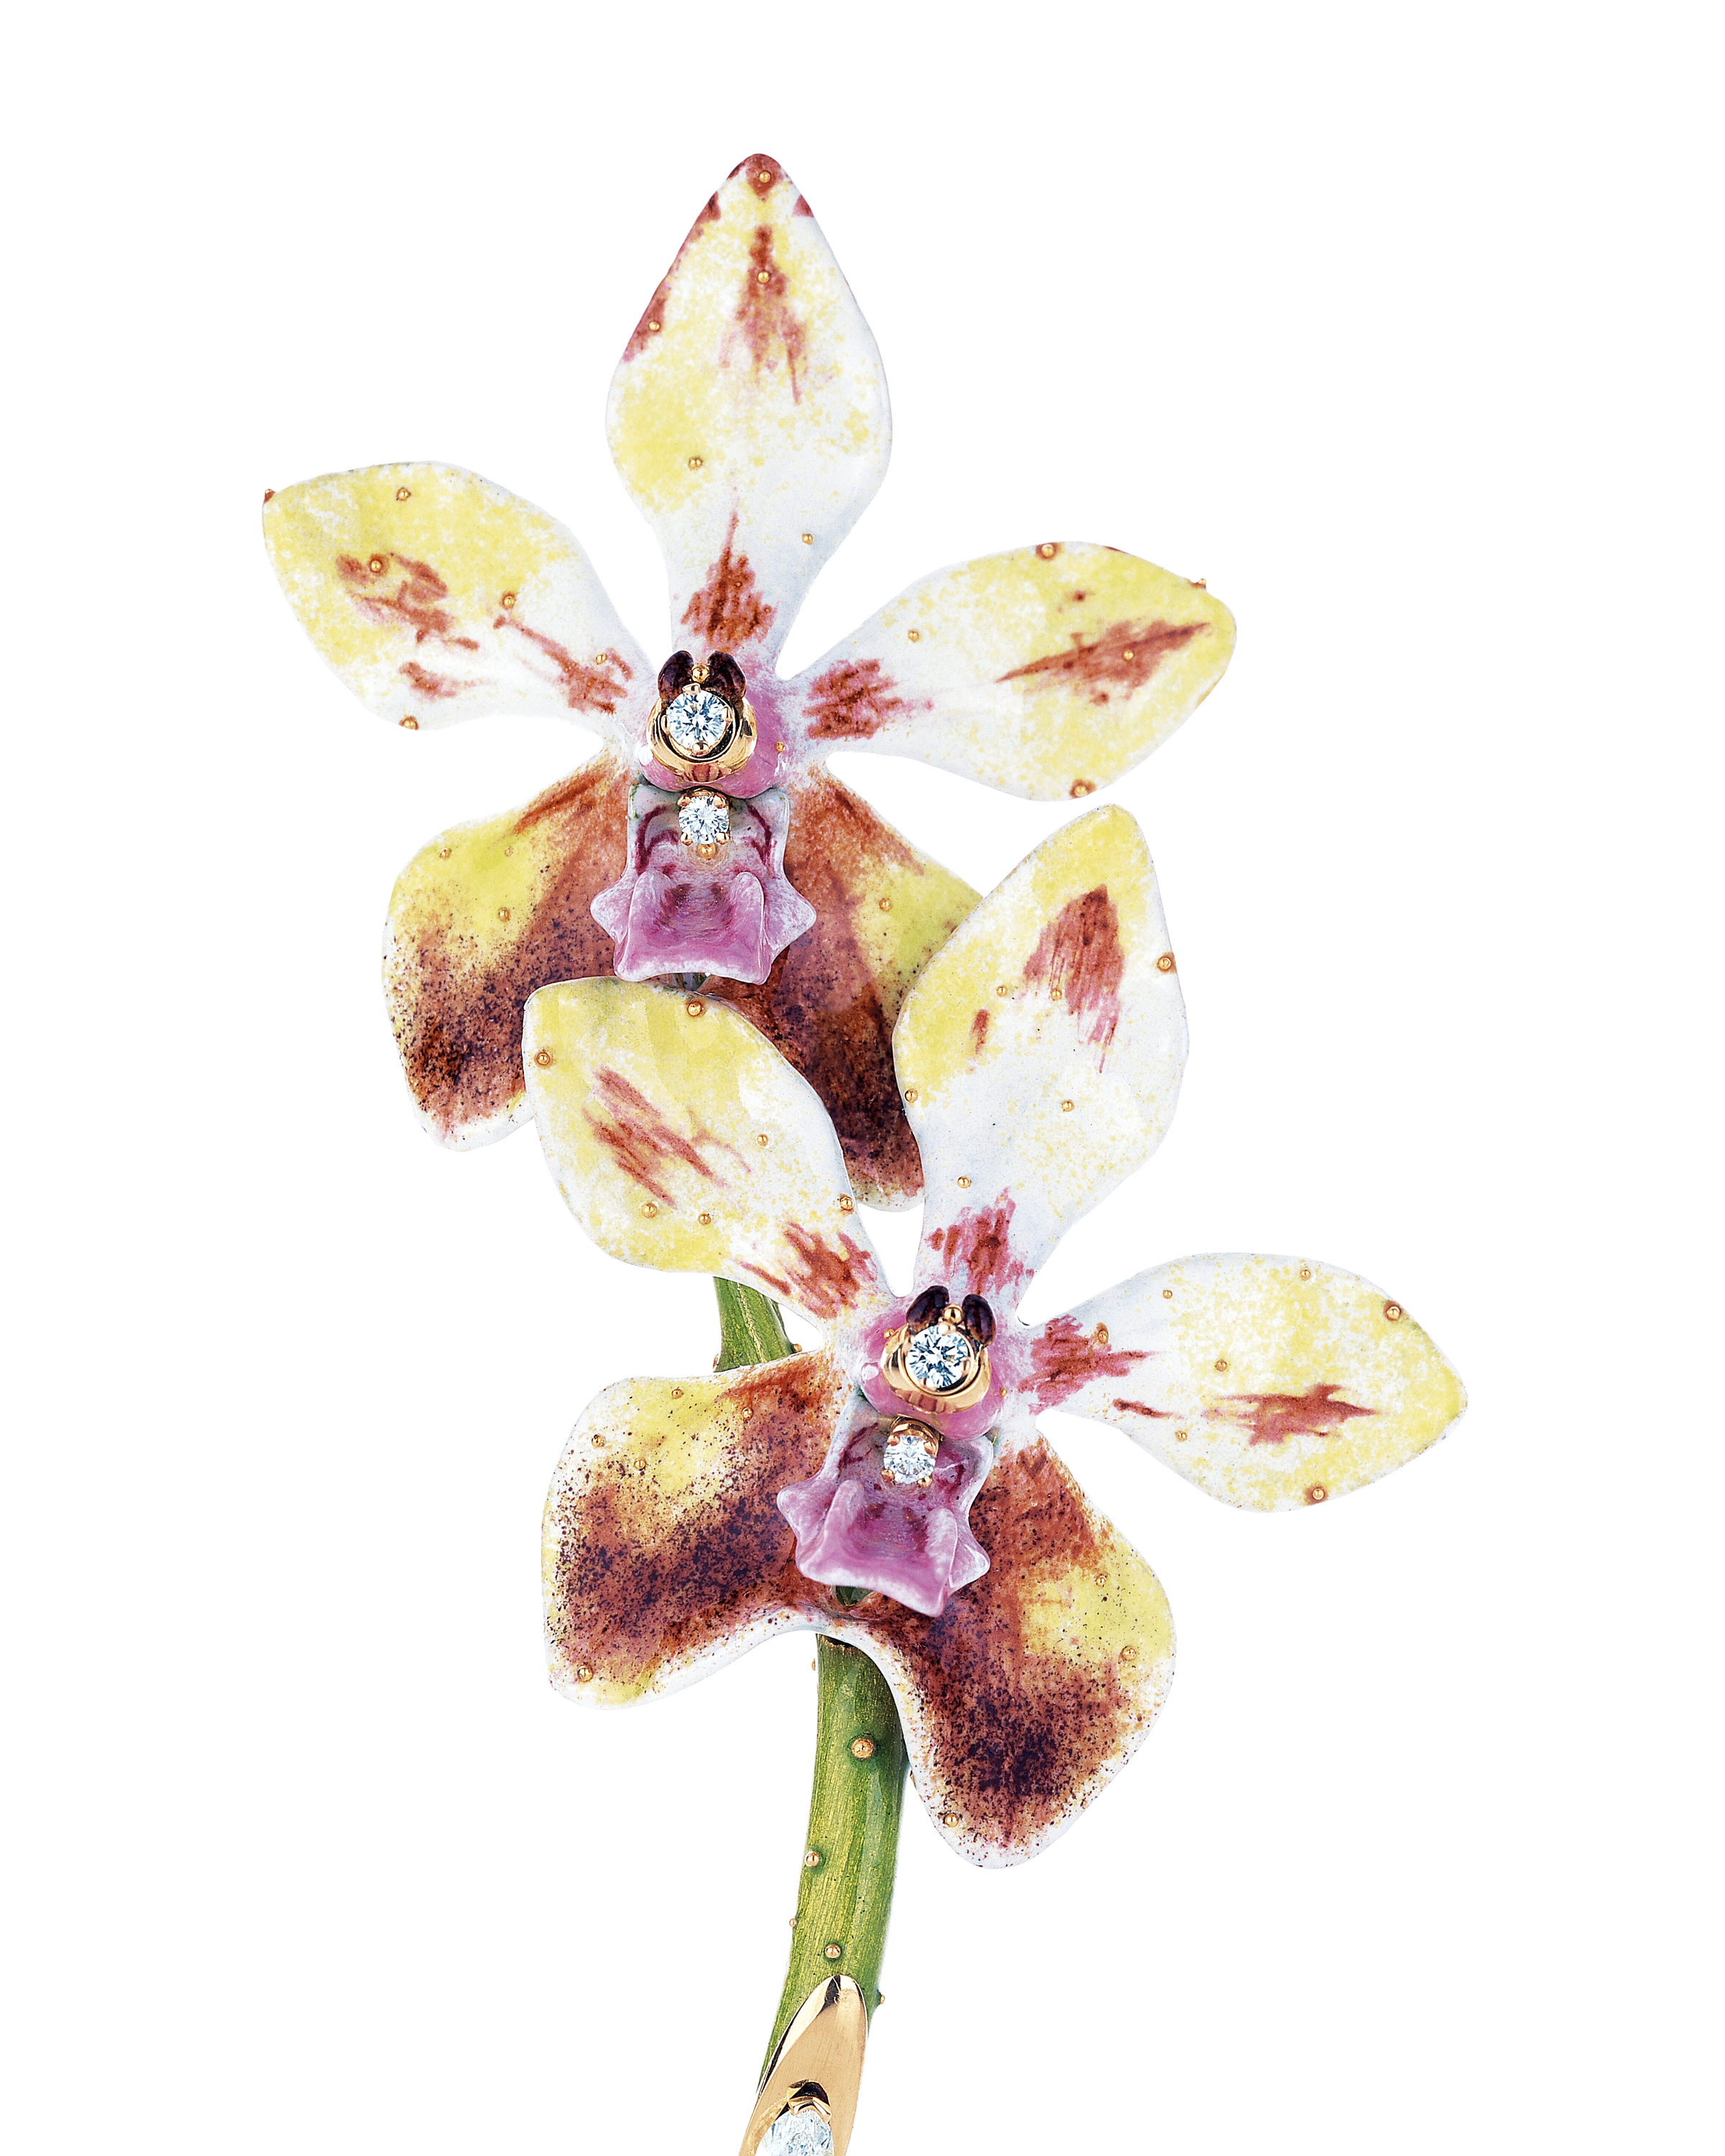 vividpurpleorchidshot scott west orchid diamond victorian